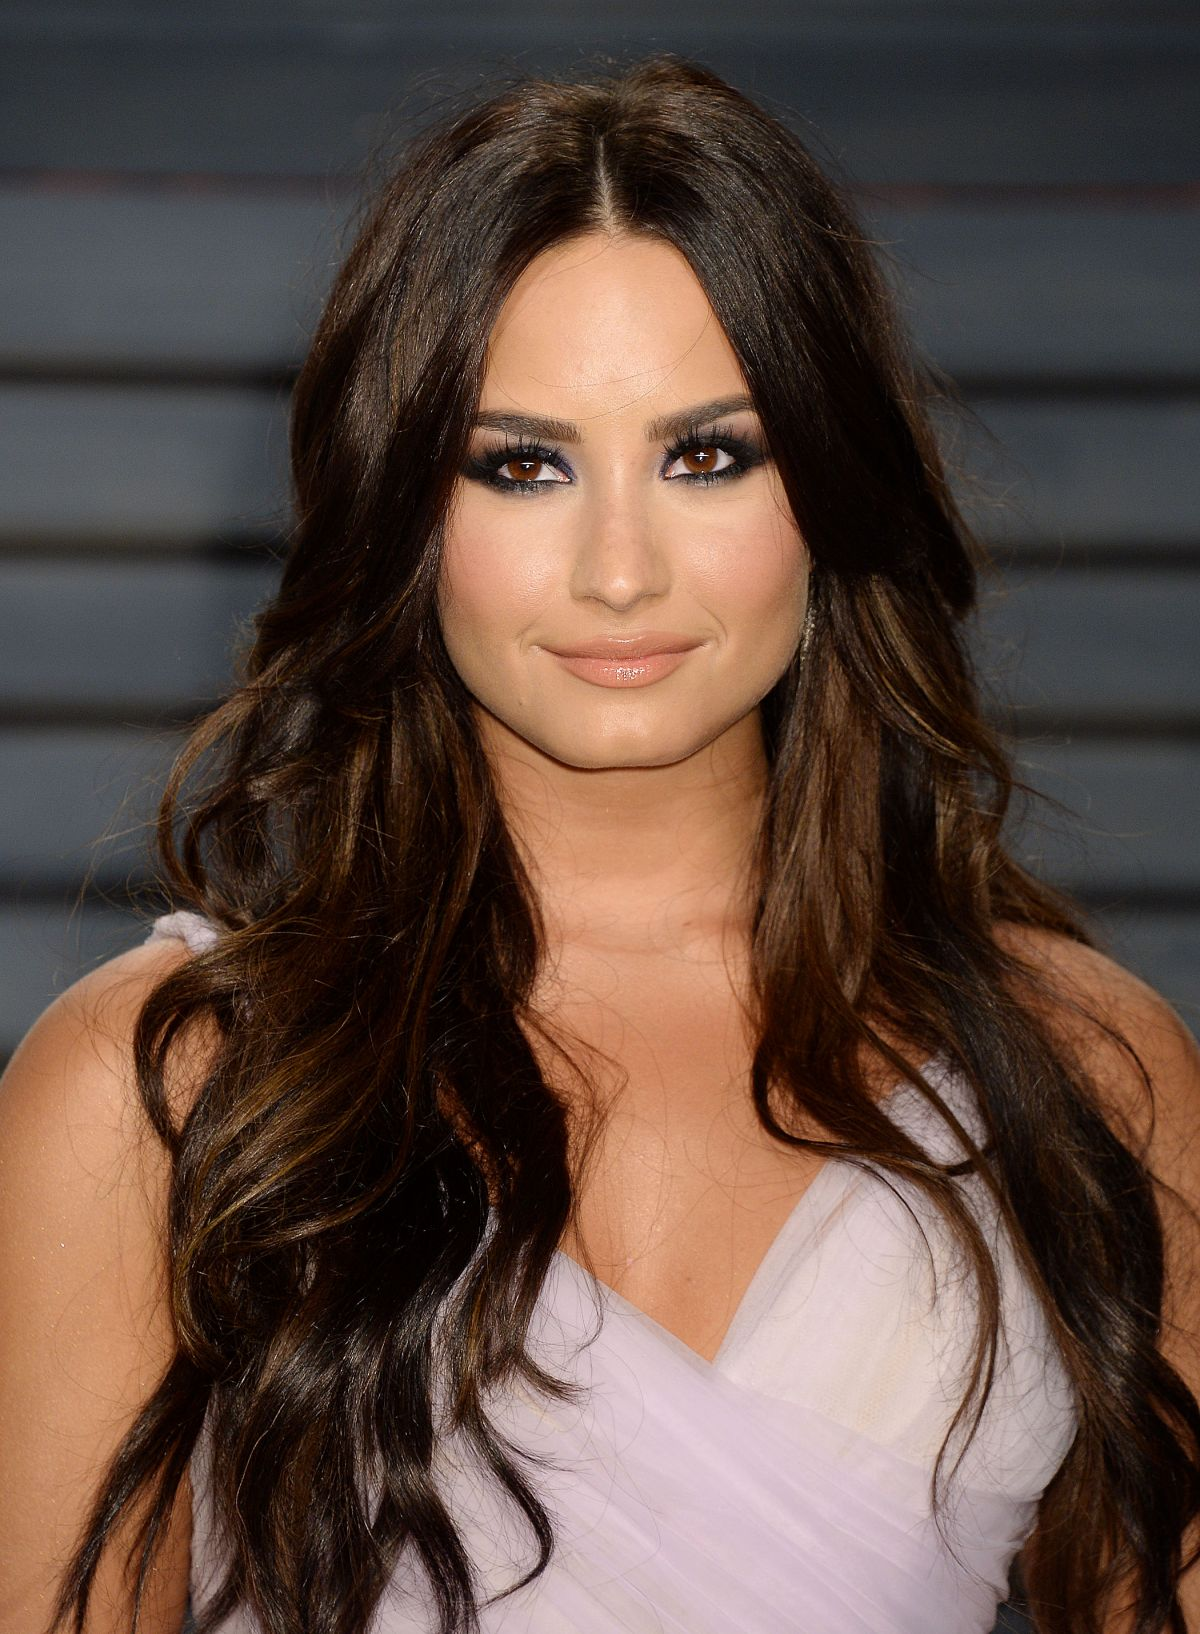 demi lovato - photo #4